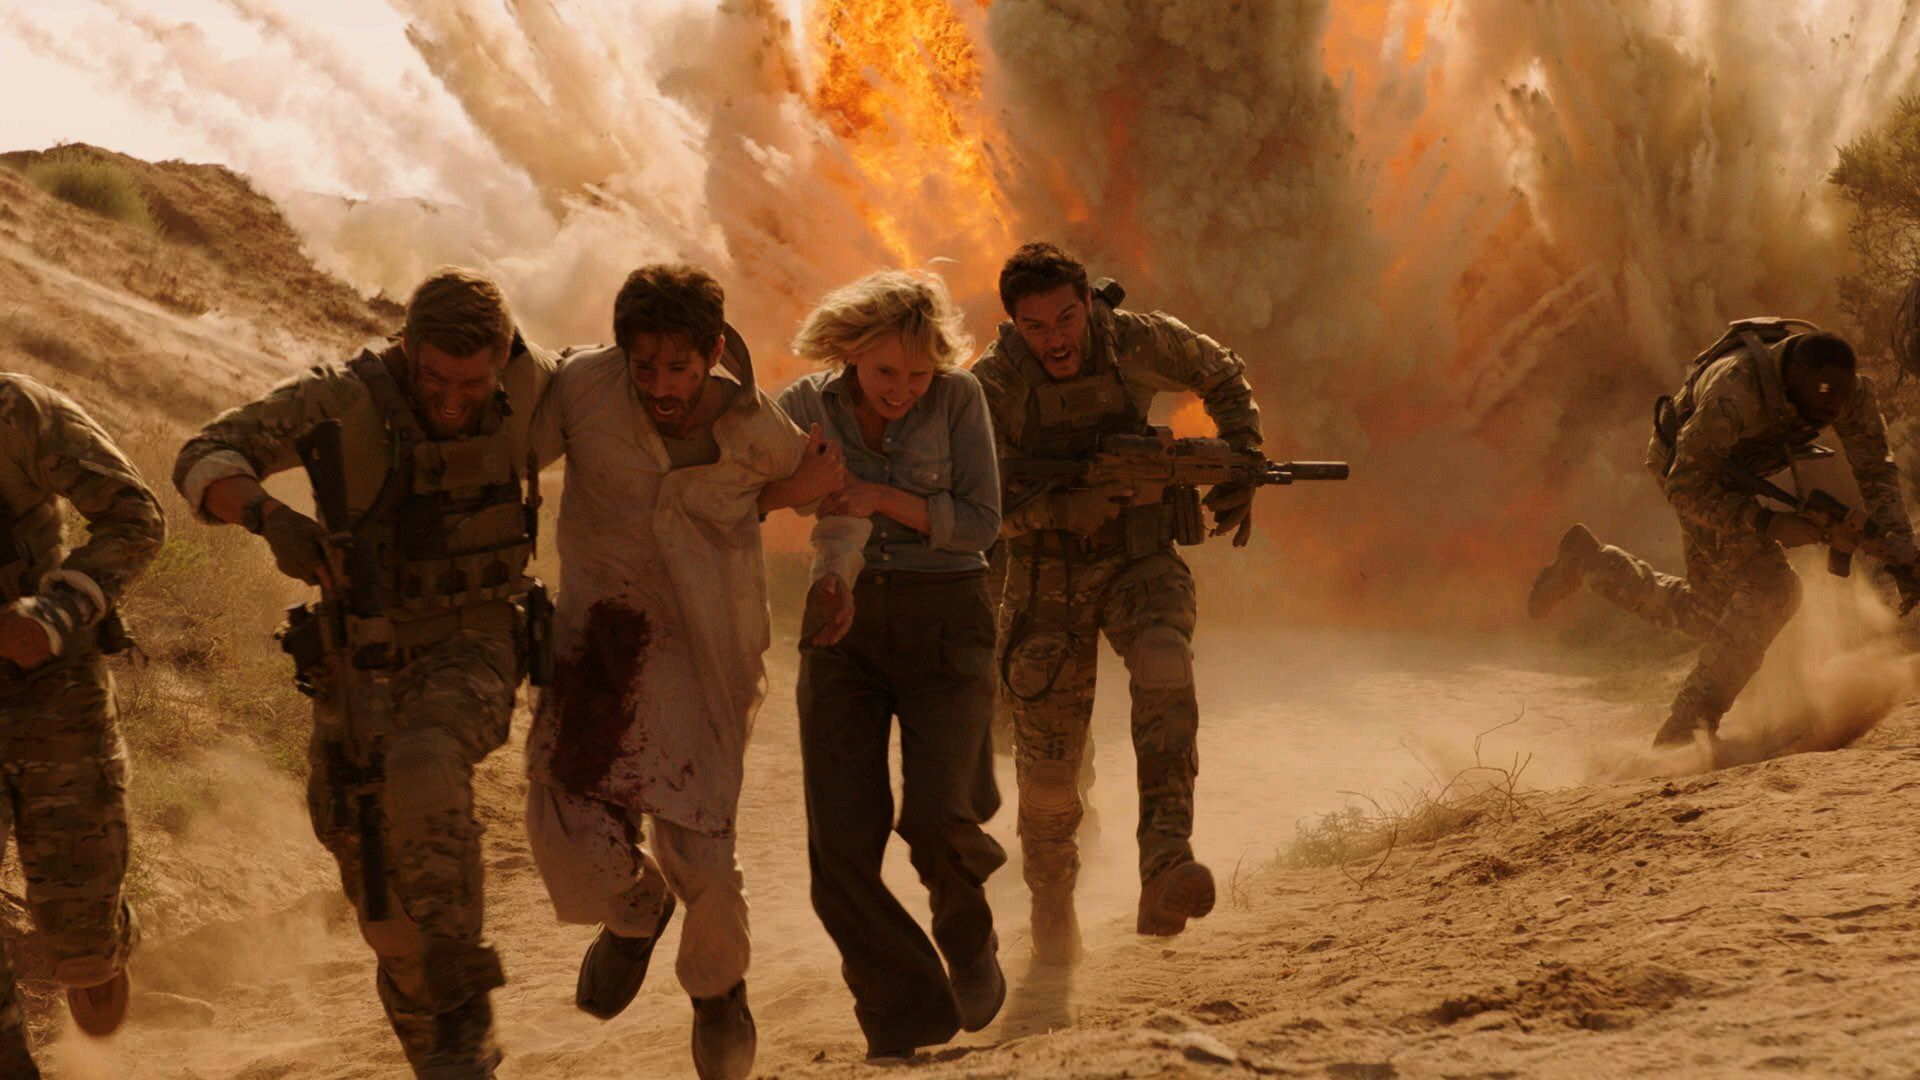 Pin by Yun Man on Photos The Brave Best new shows